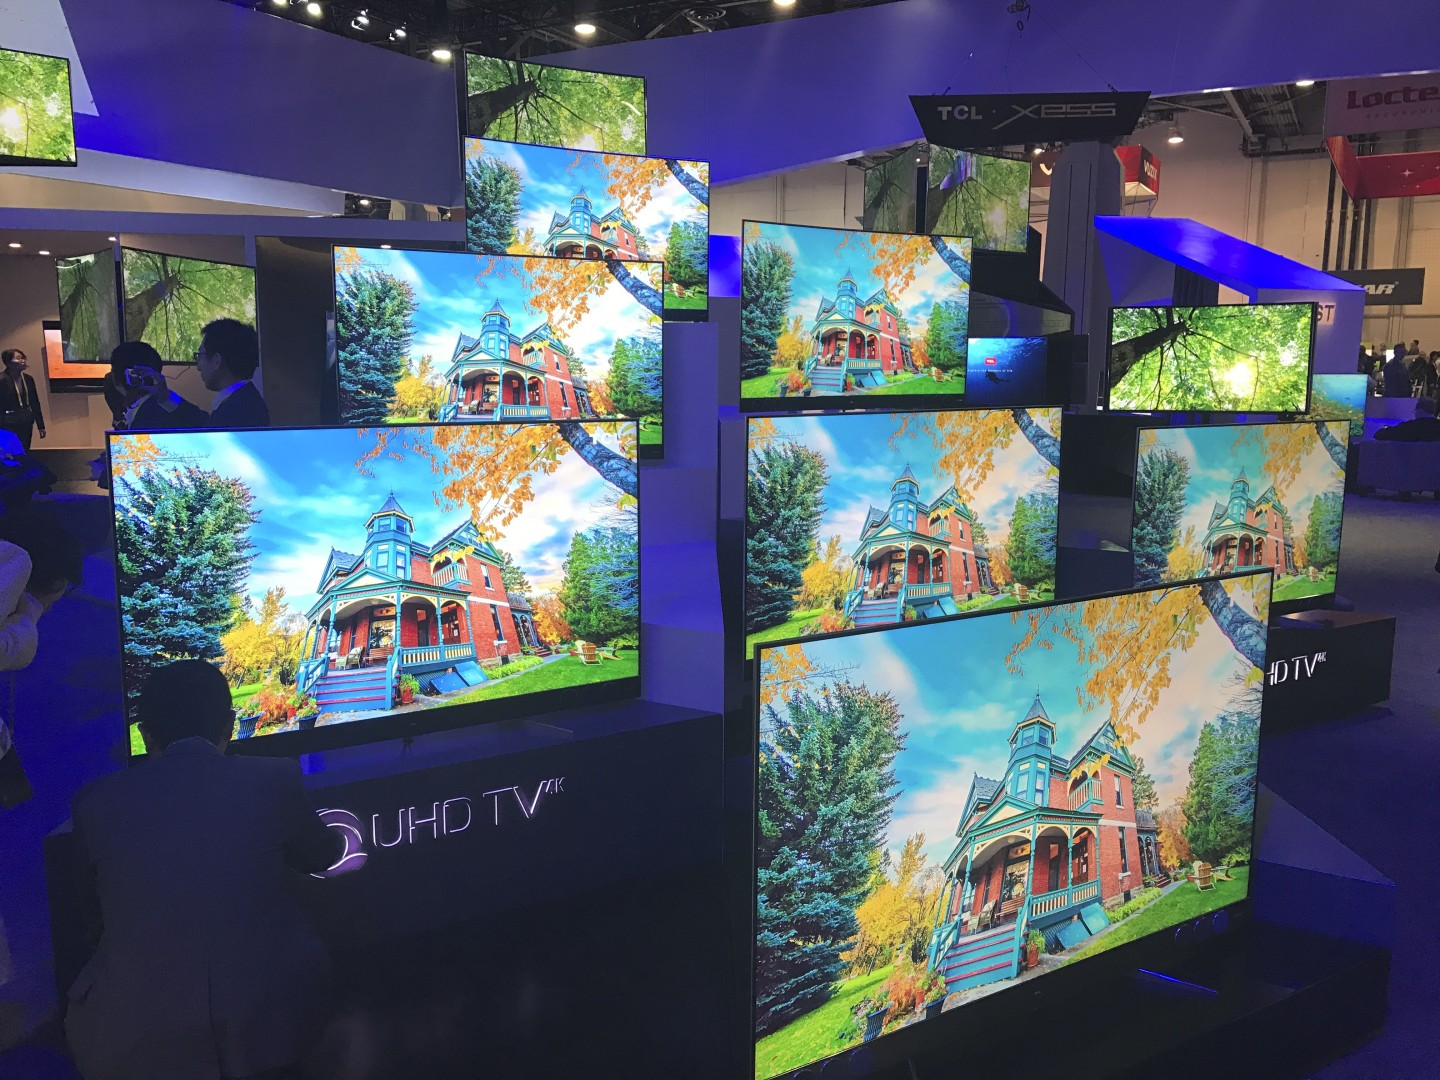 The complete guide to buying a TV – flat or curved, HDR or